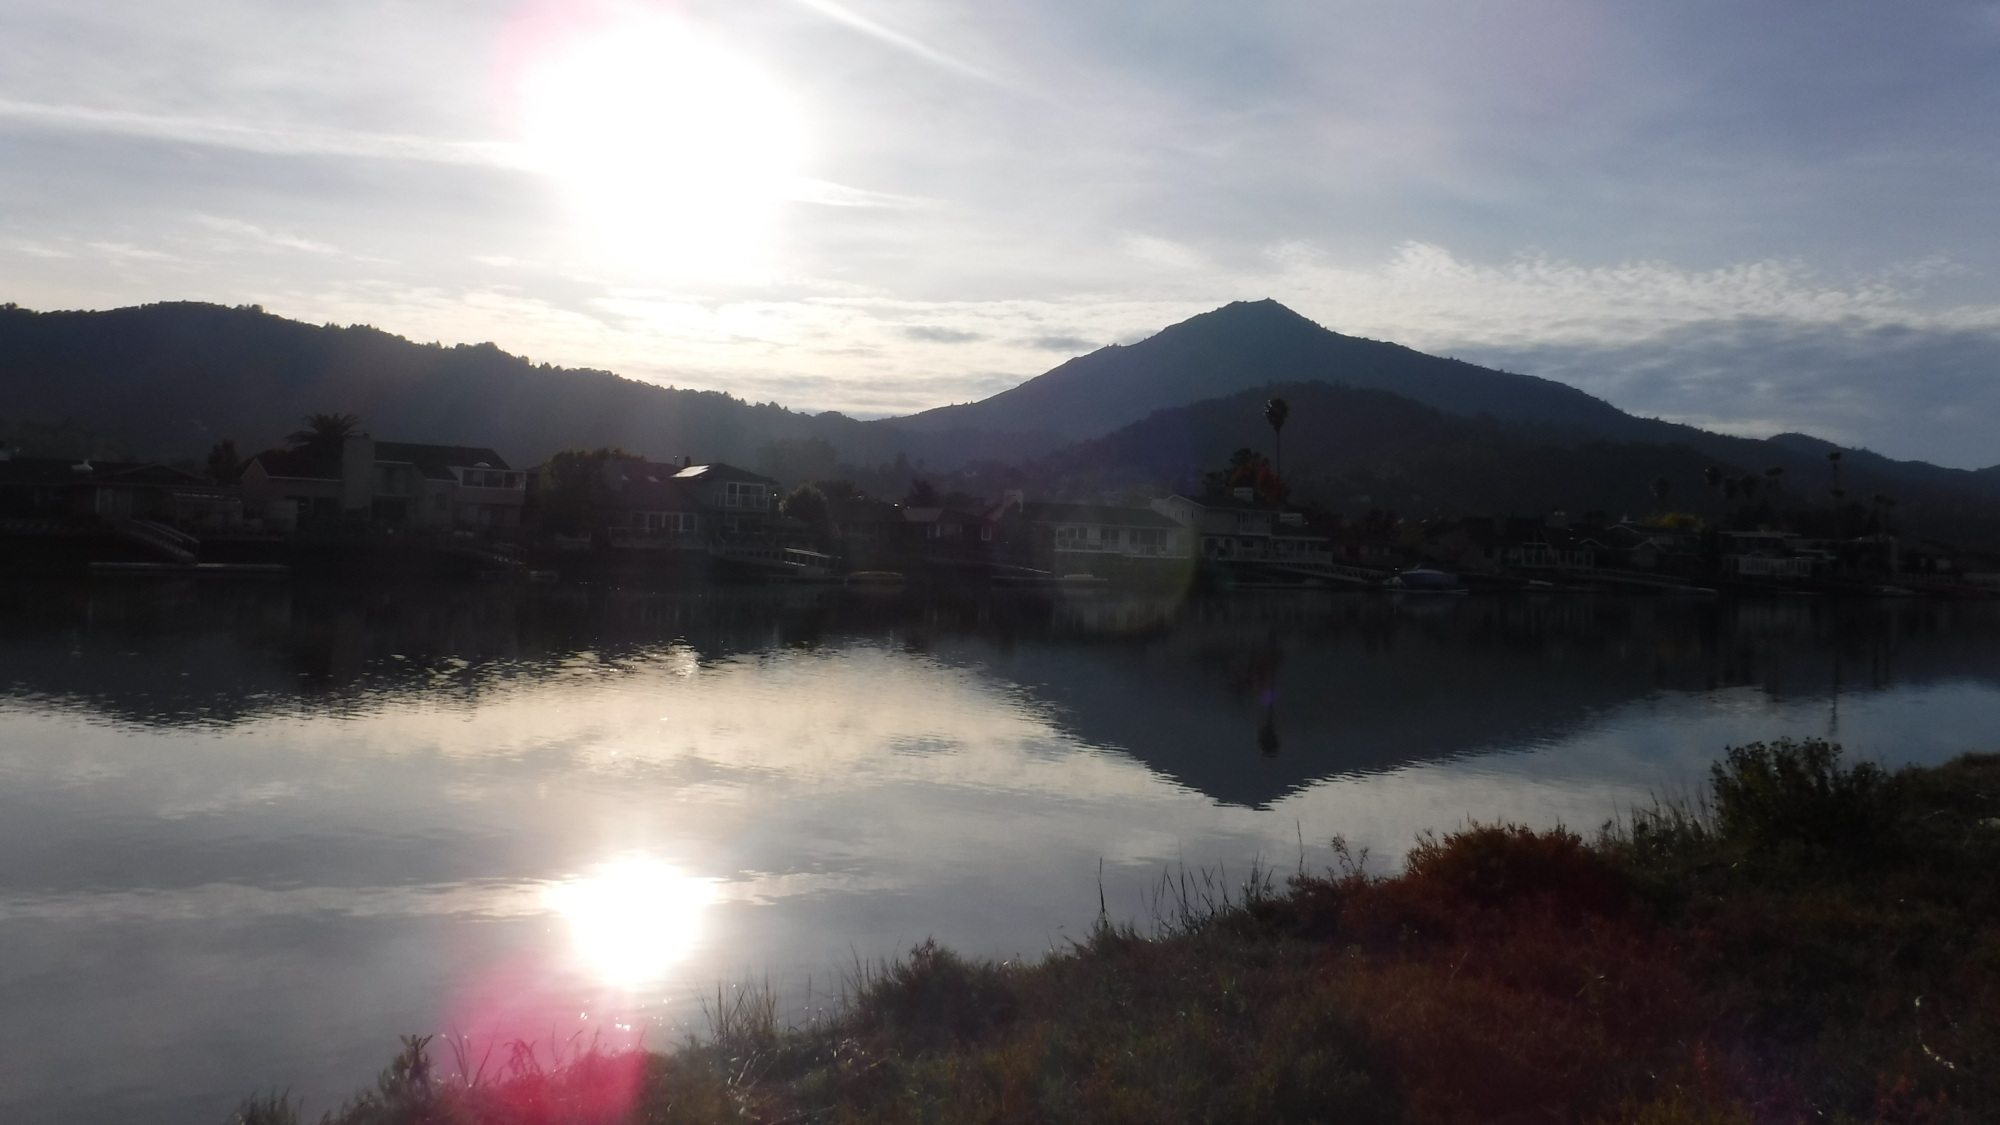 Mount Tamalpias over Corte Madera Creek